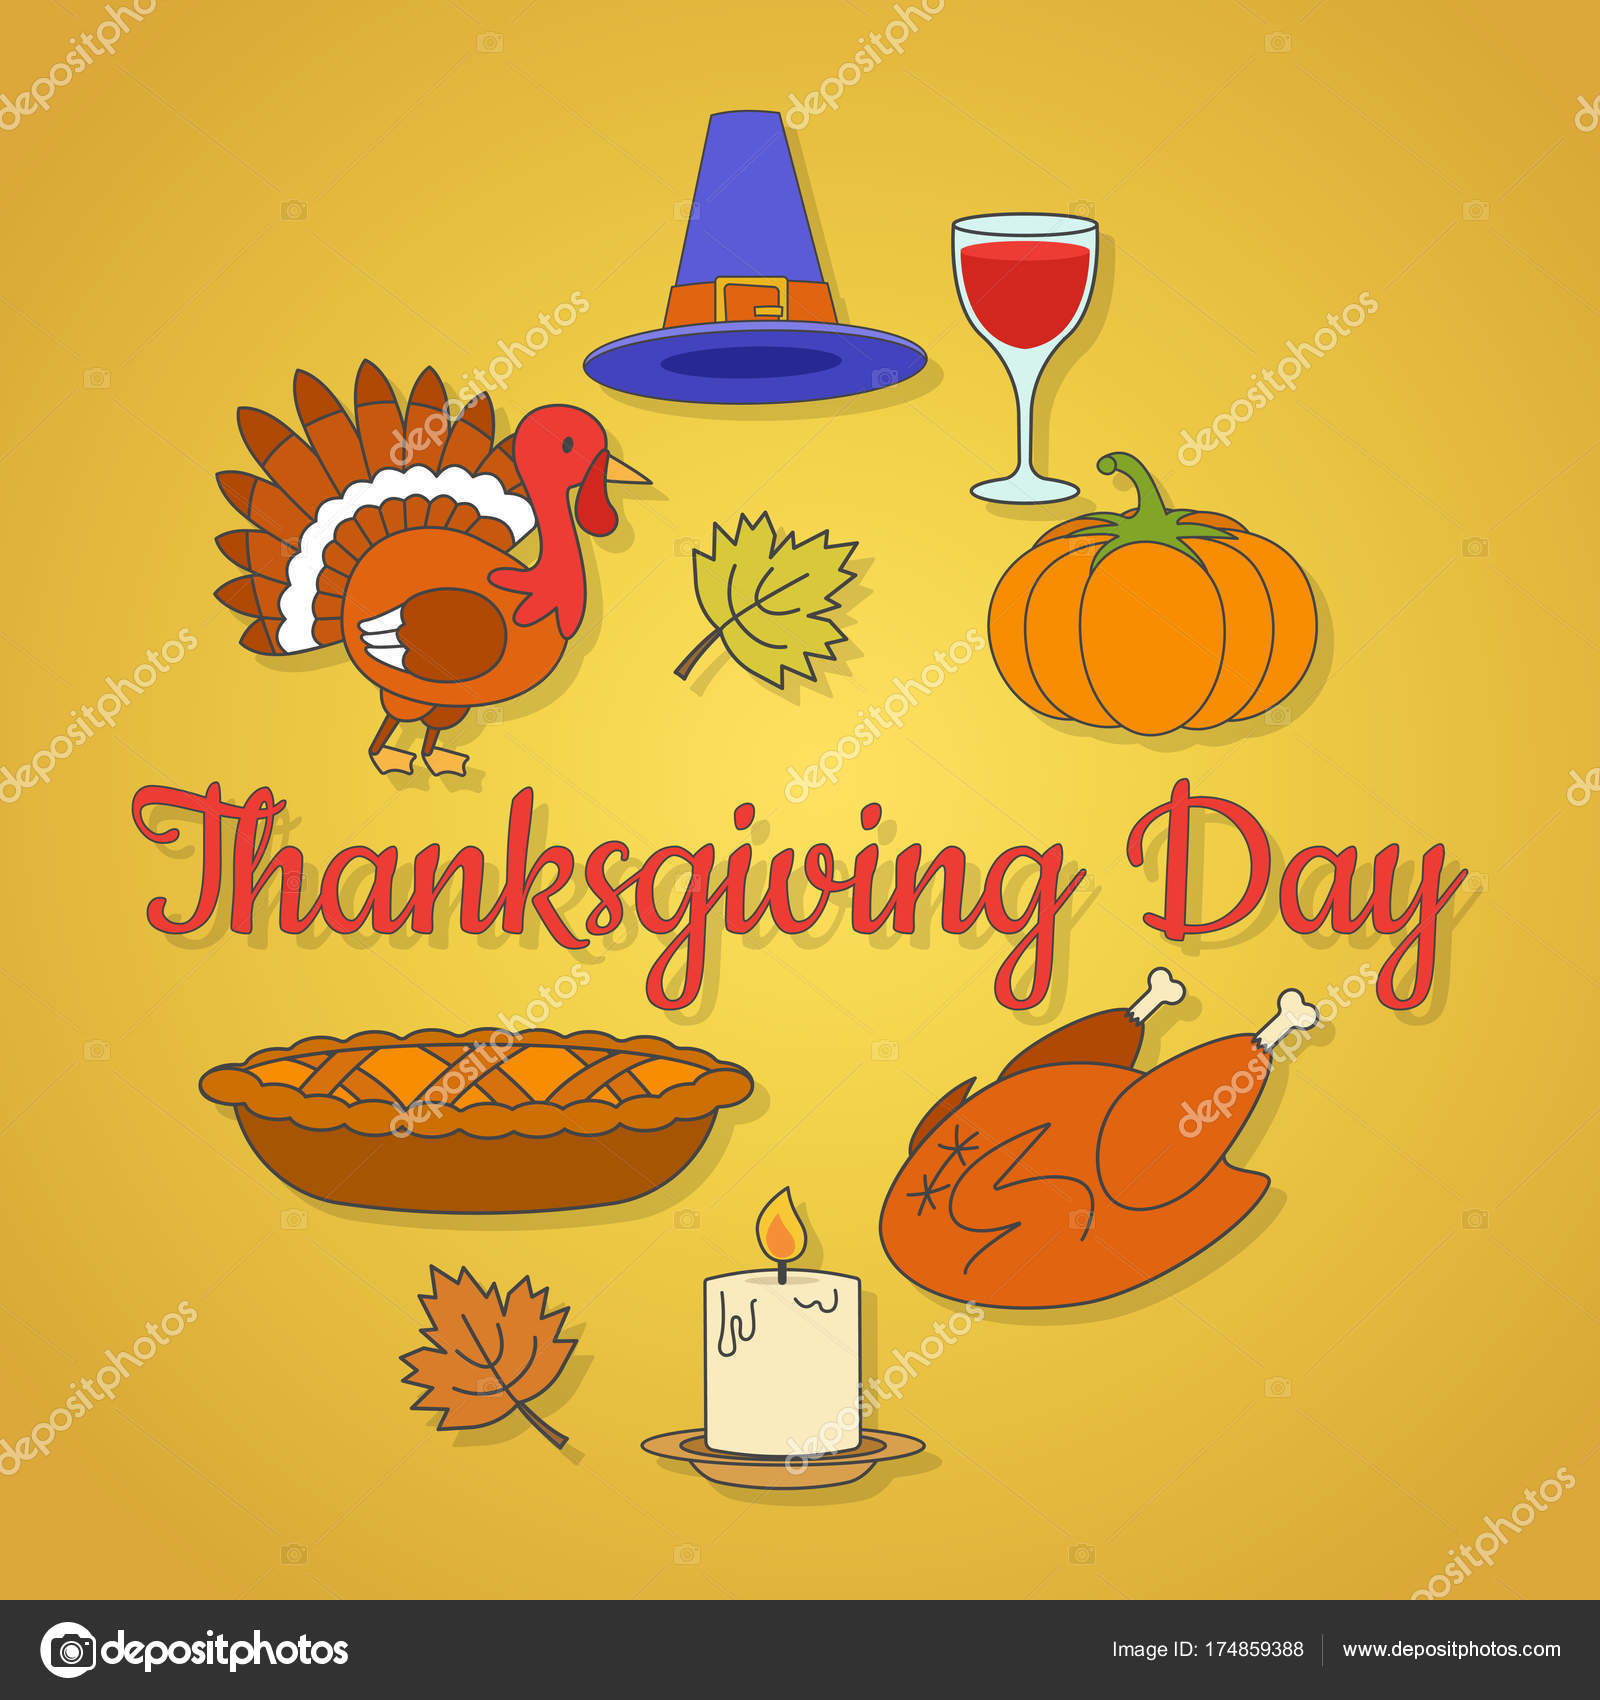 Thanksgiving Day Concept With Holiday Symbols Stock Vector